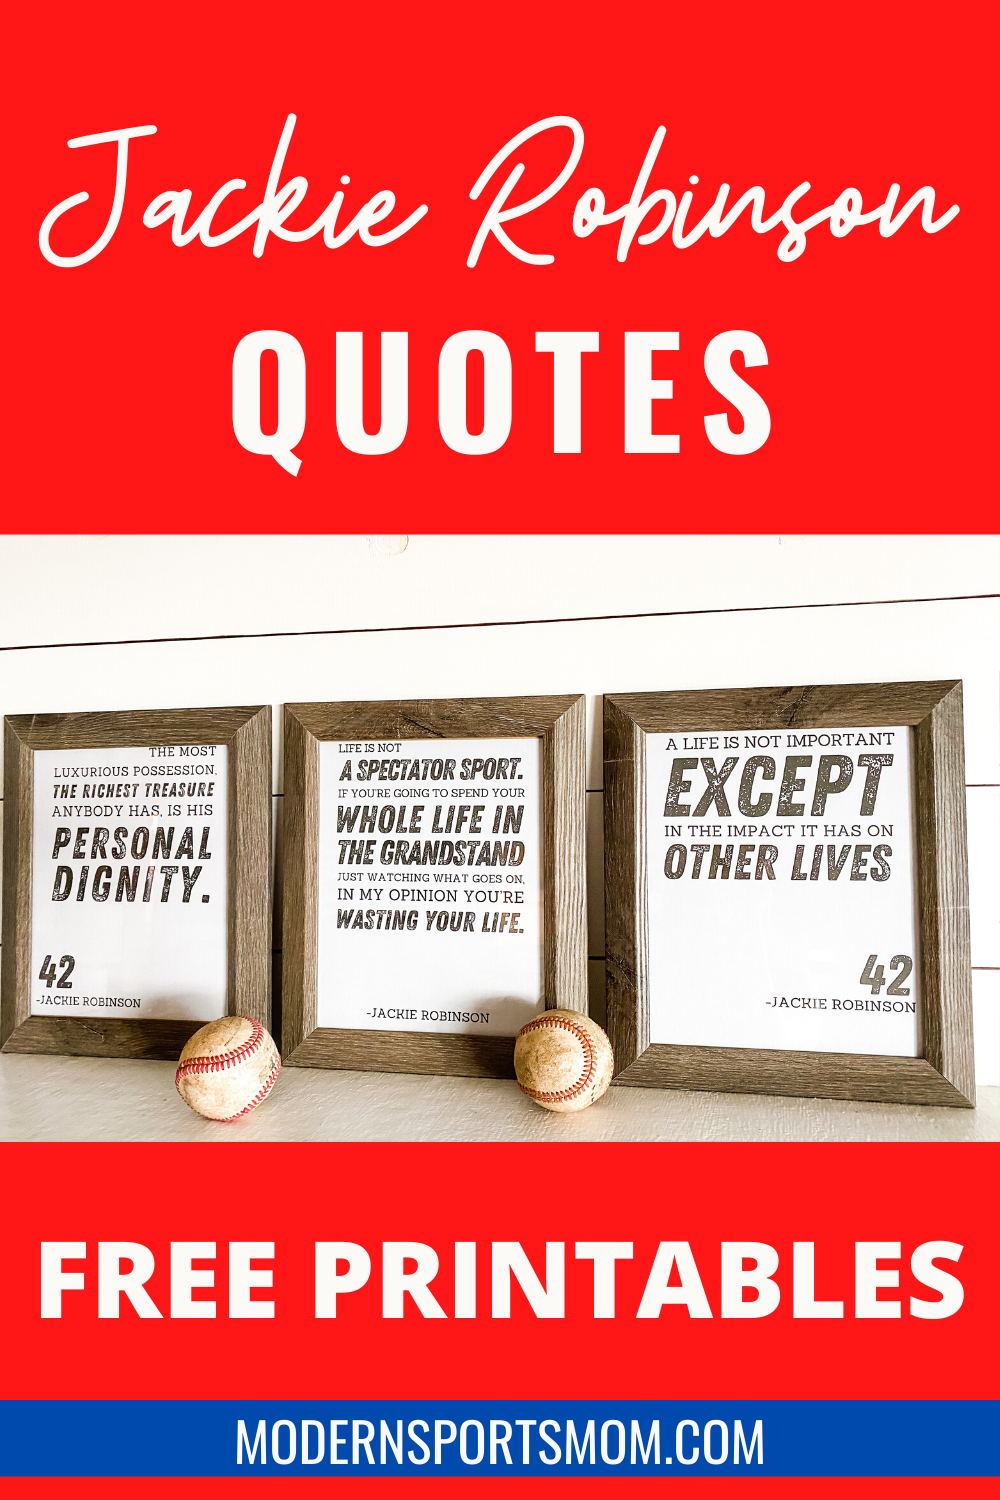 These free printables of popular Jackie Robinson quotes are the perfect way to honor this legend as we celebrate Jackie Robinson Day!